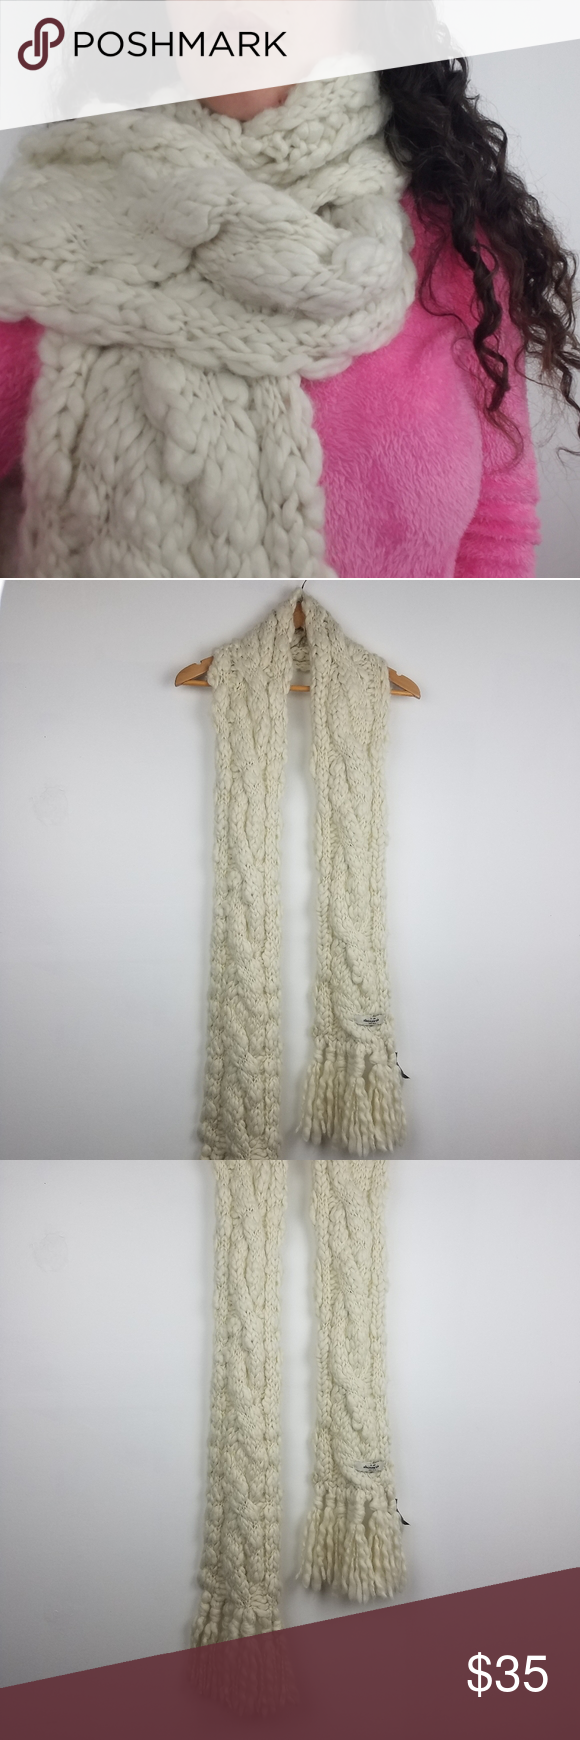 Photo of Neu! Abercrombie and Fitch | Chunky Knit Scarf Große, klobige, gestrickte, cremefarbene Narbe …